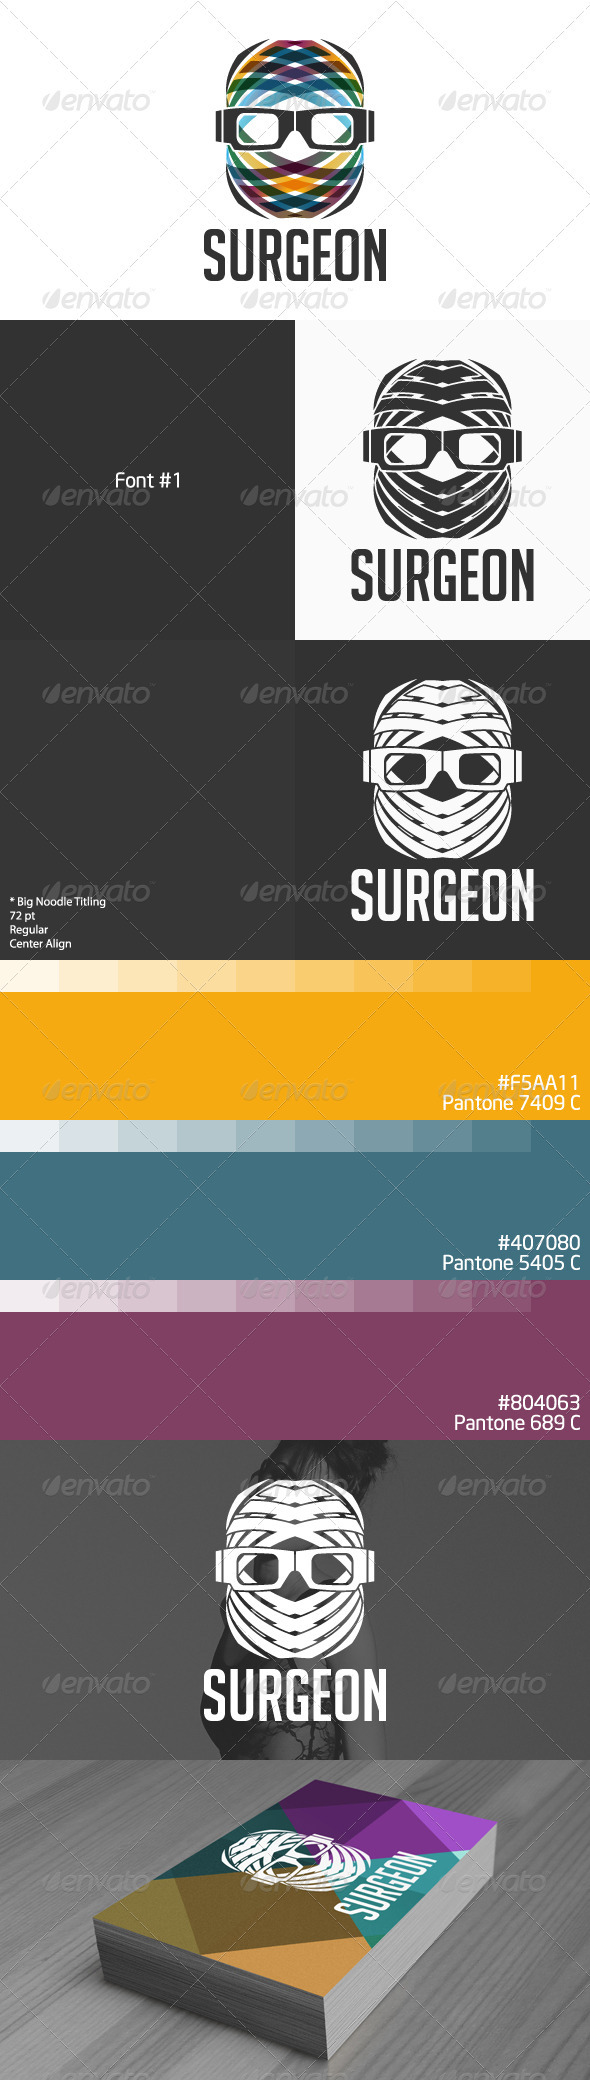 GraphicRiver Doctor Logo 3622573